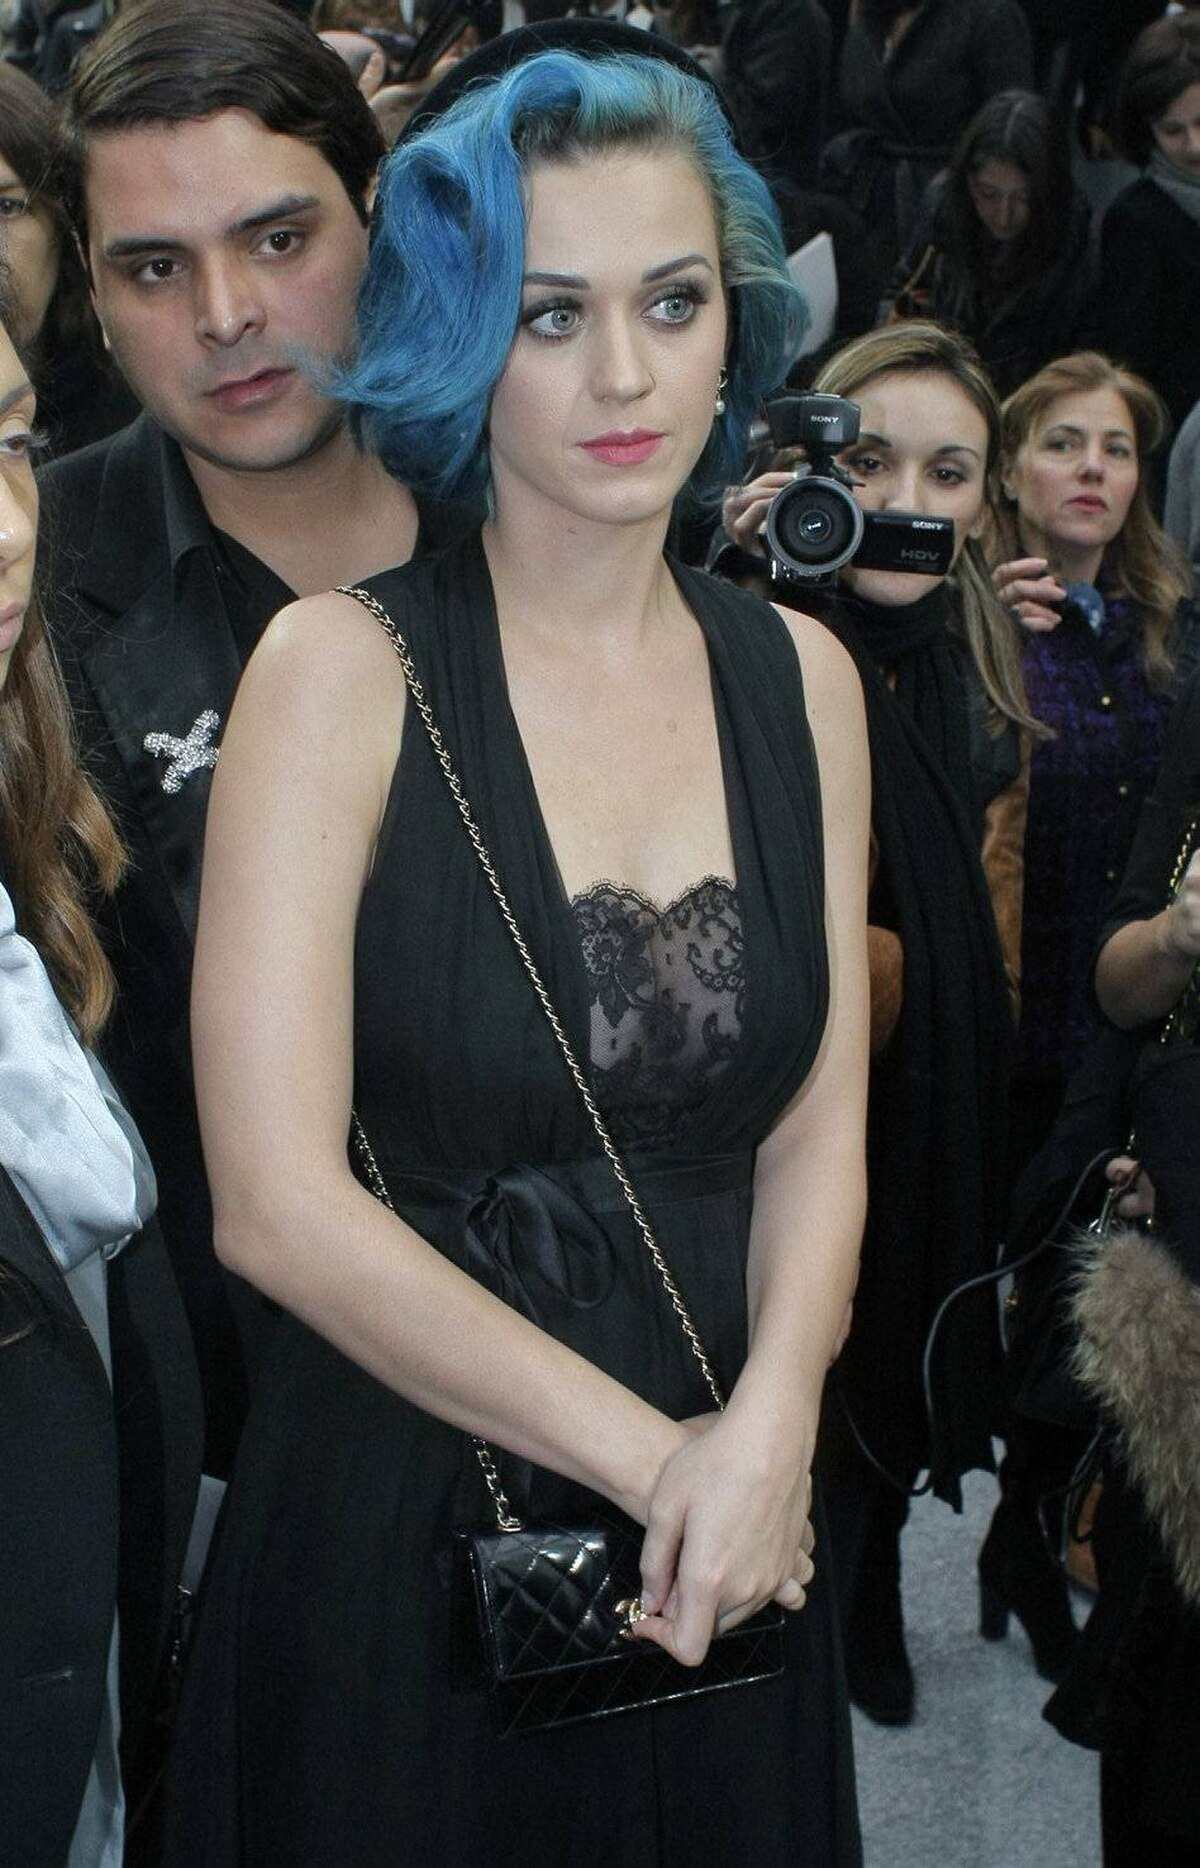 Katy Perry and her blue hair were invited along for the ride.